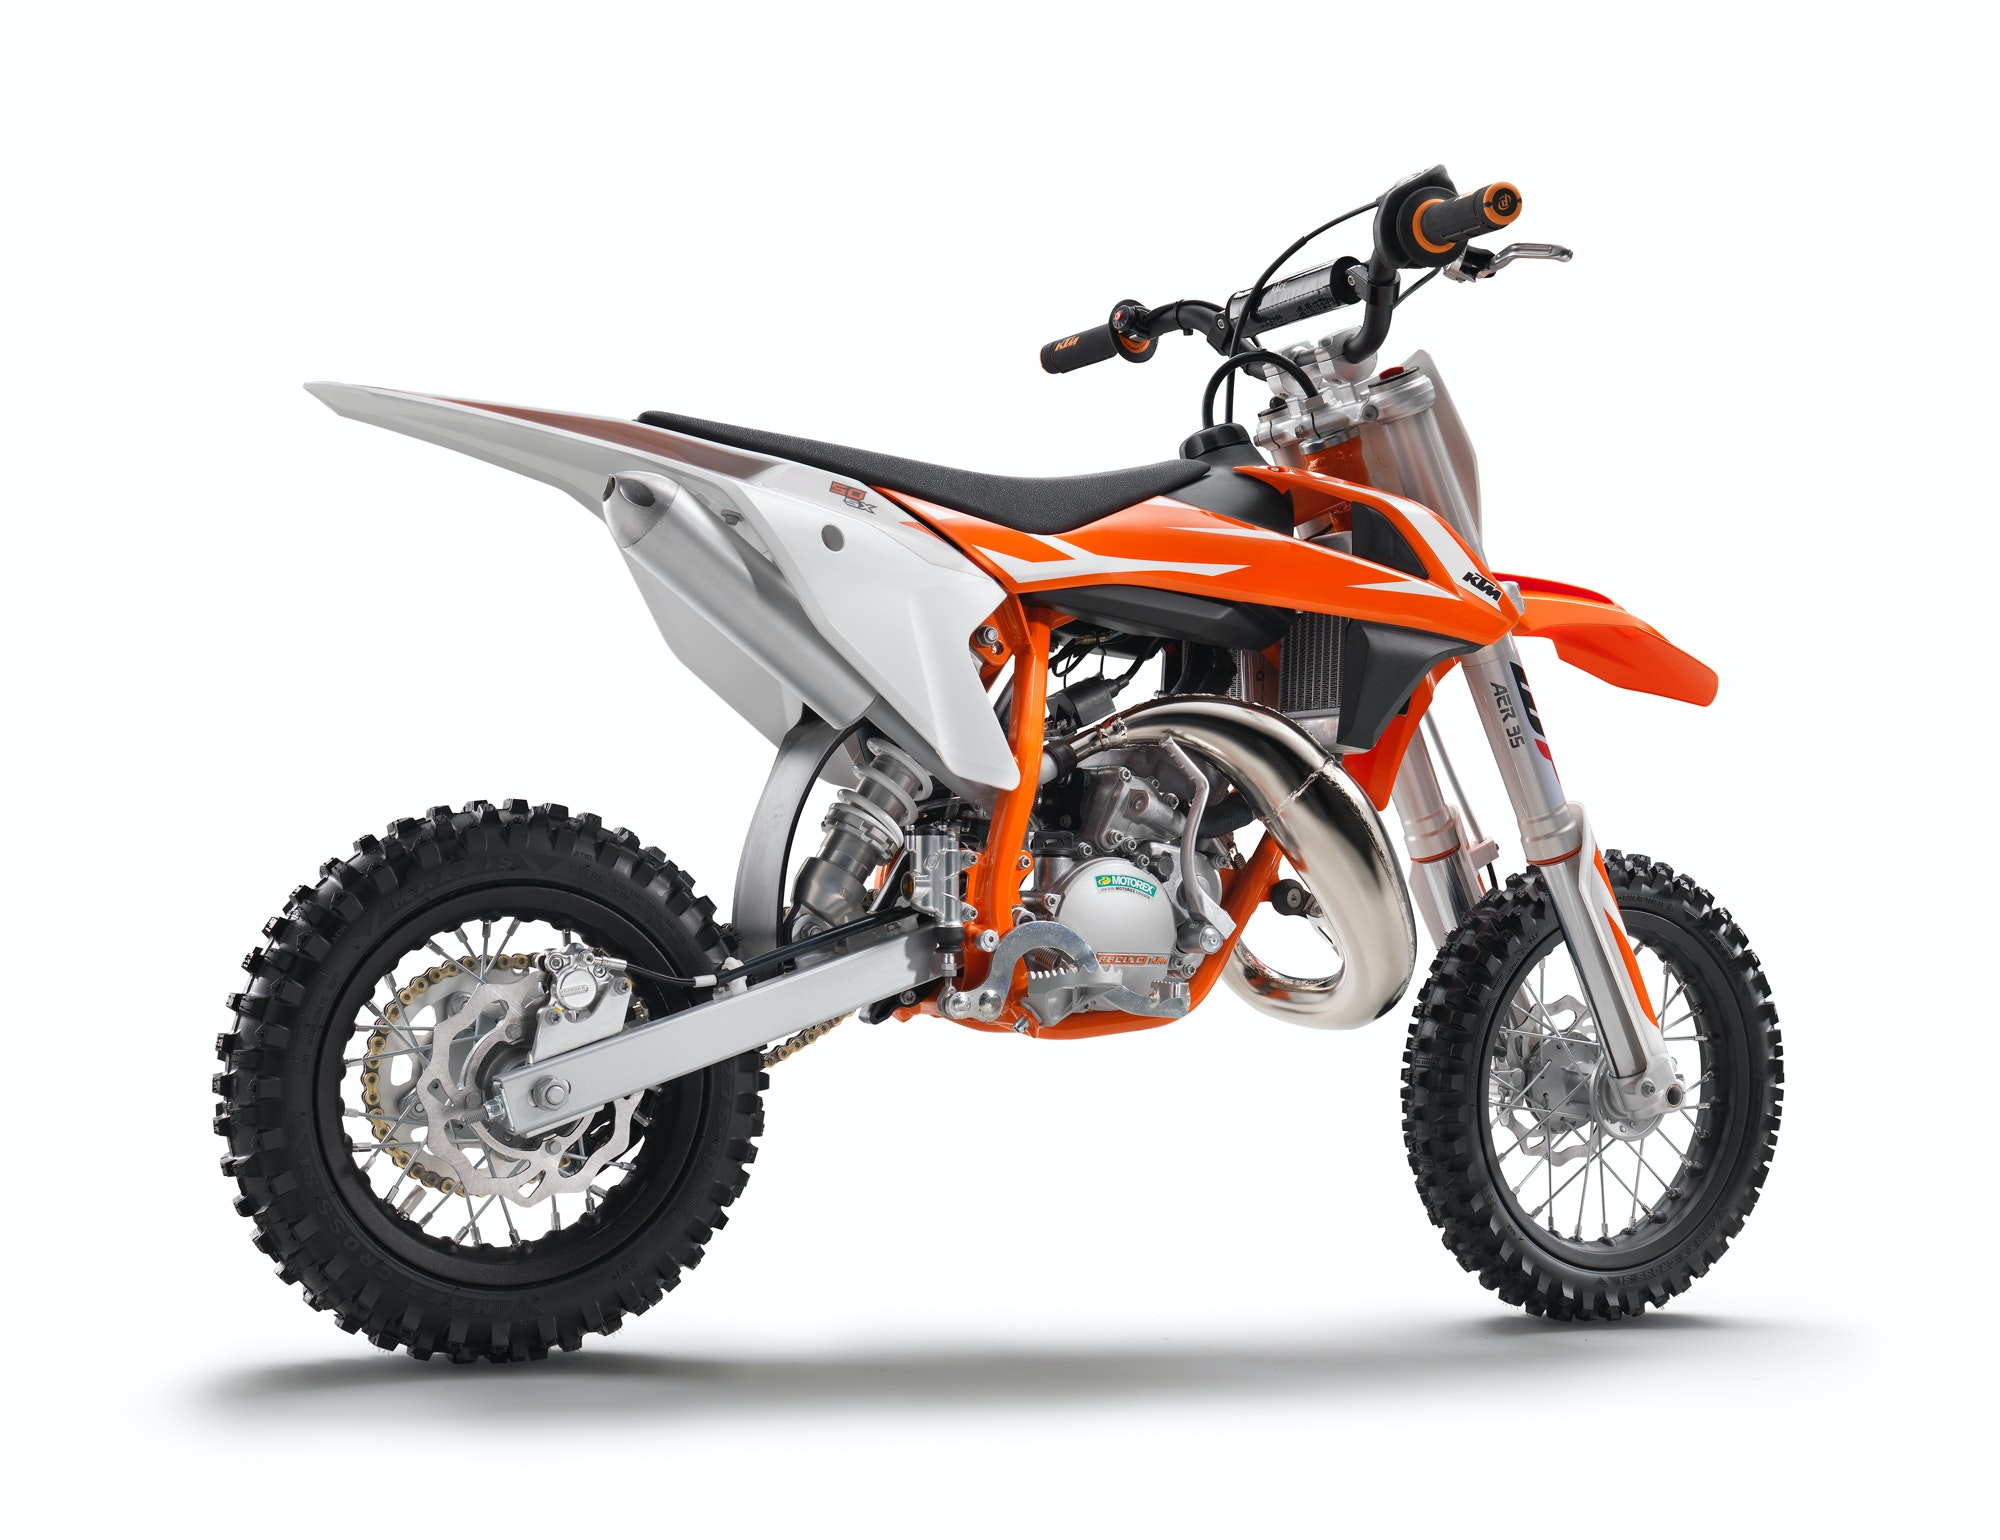 2018 ktm xc 250. brilliant ktm ktm 50 sx ktm throughout 2018 ktm xc 250 n